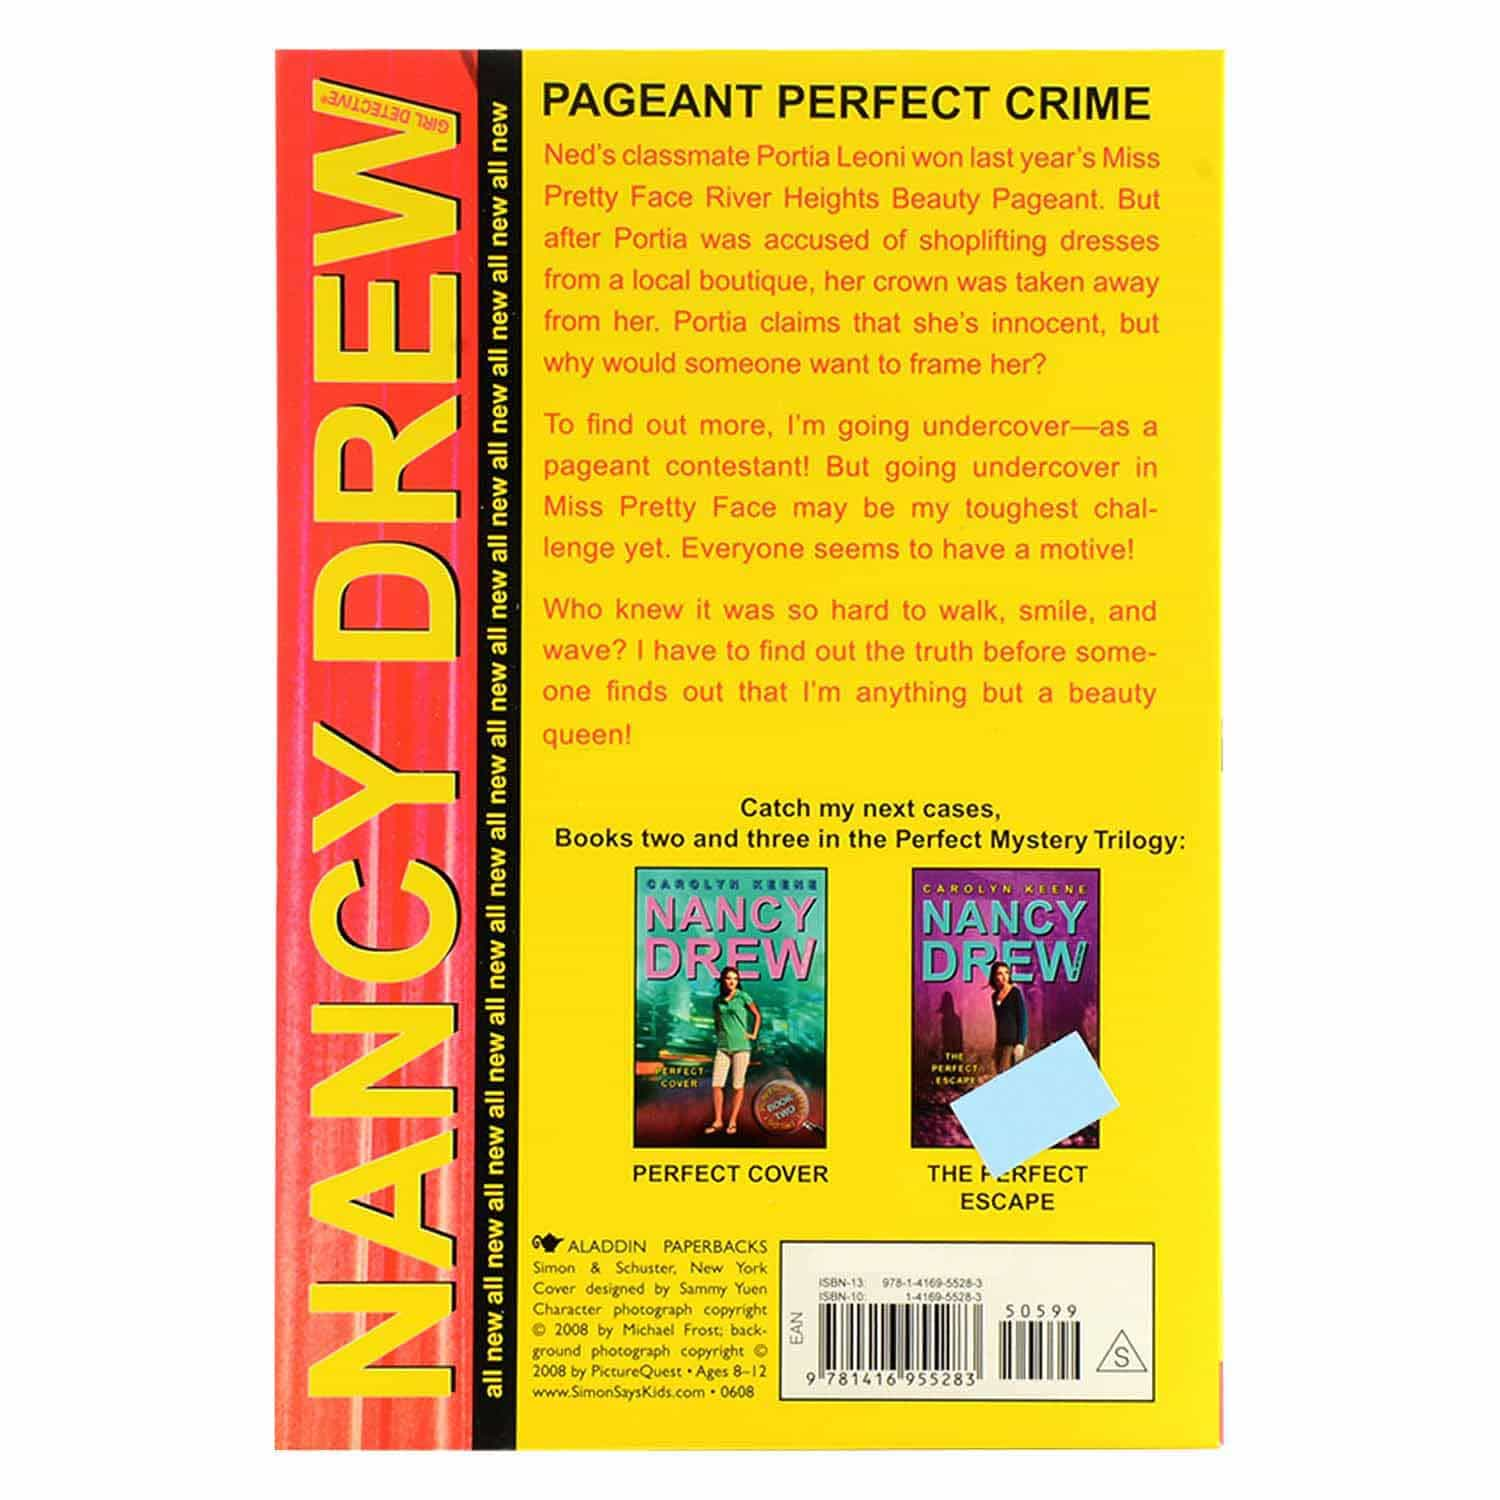 Nancy Drew Series - Pageant Perfect Crime